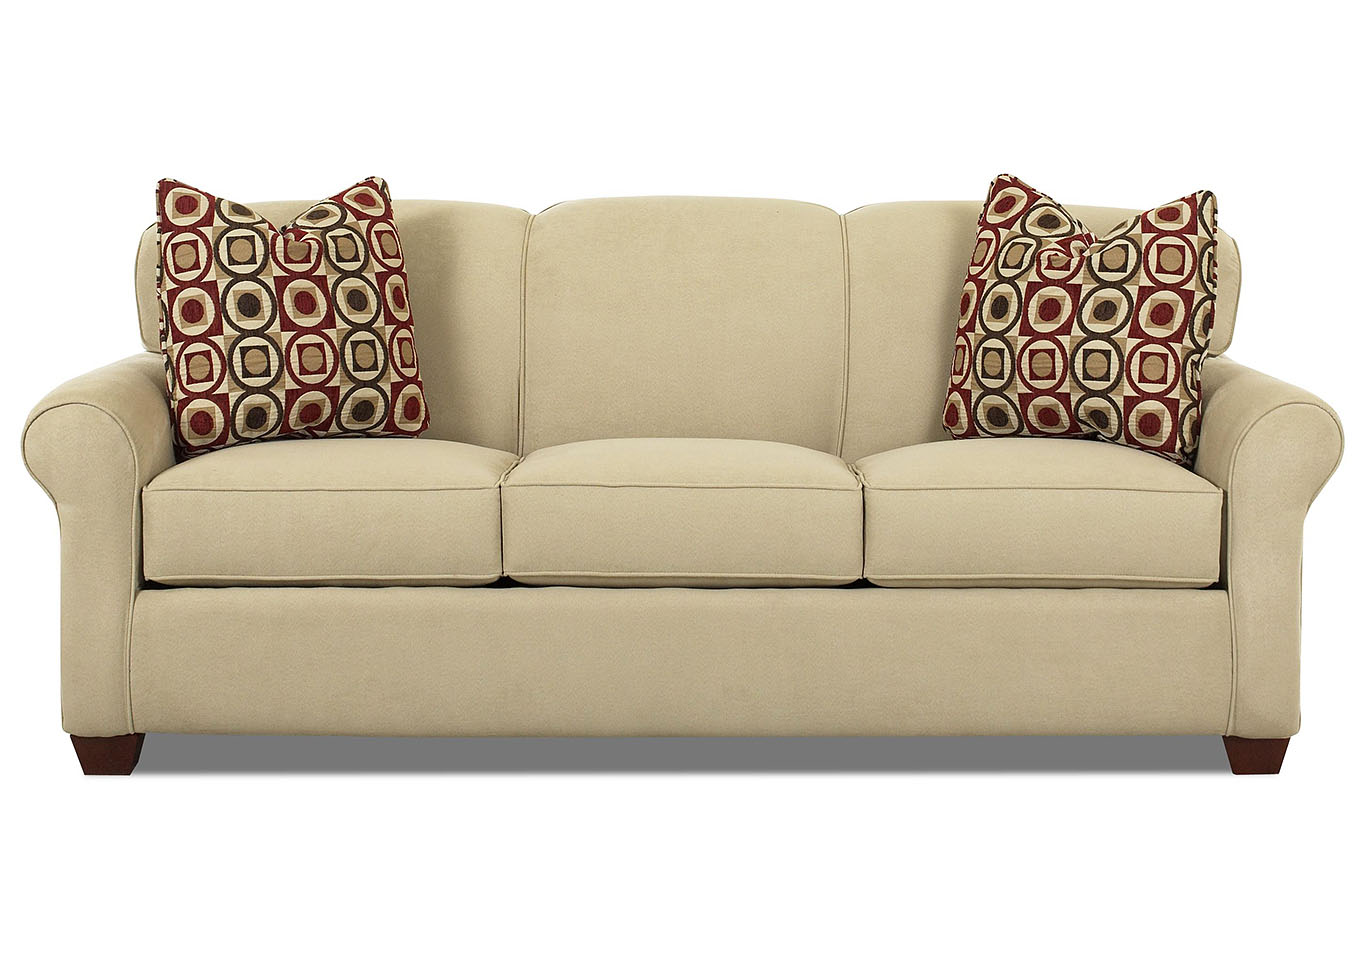 Mayhew Oatmeal Brown Stationary Fabric Sofa,Klaussner Home Furnishings